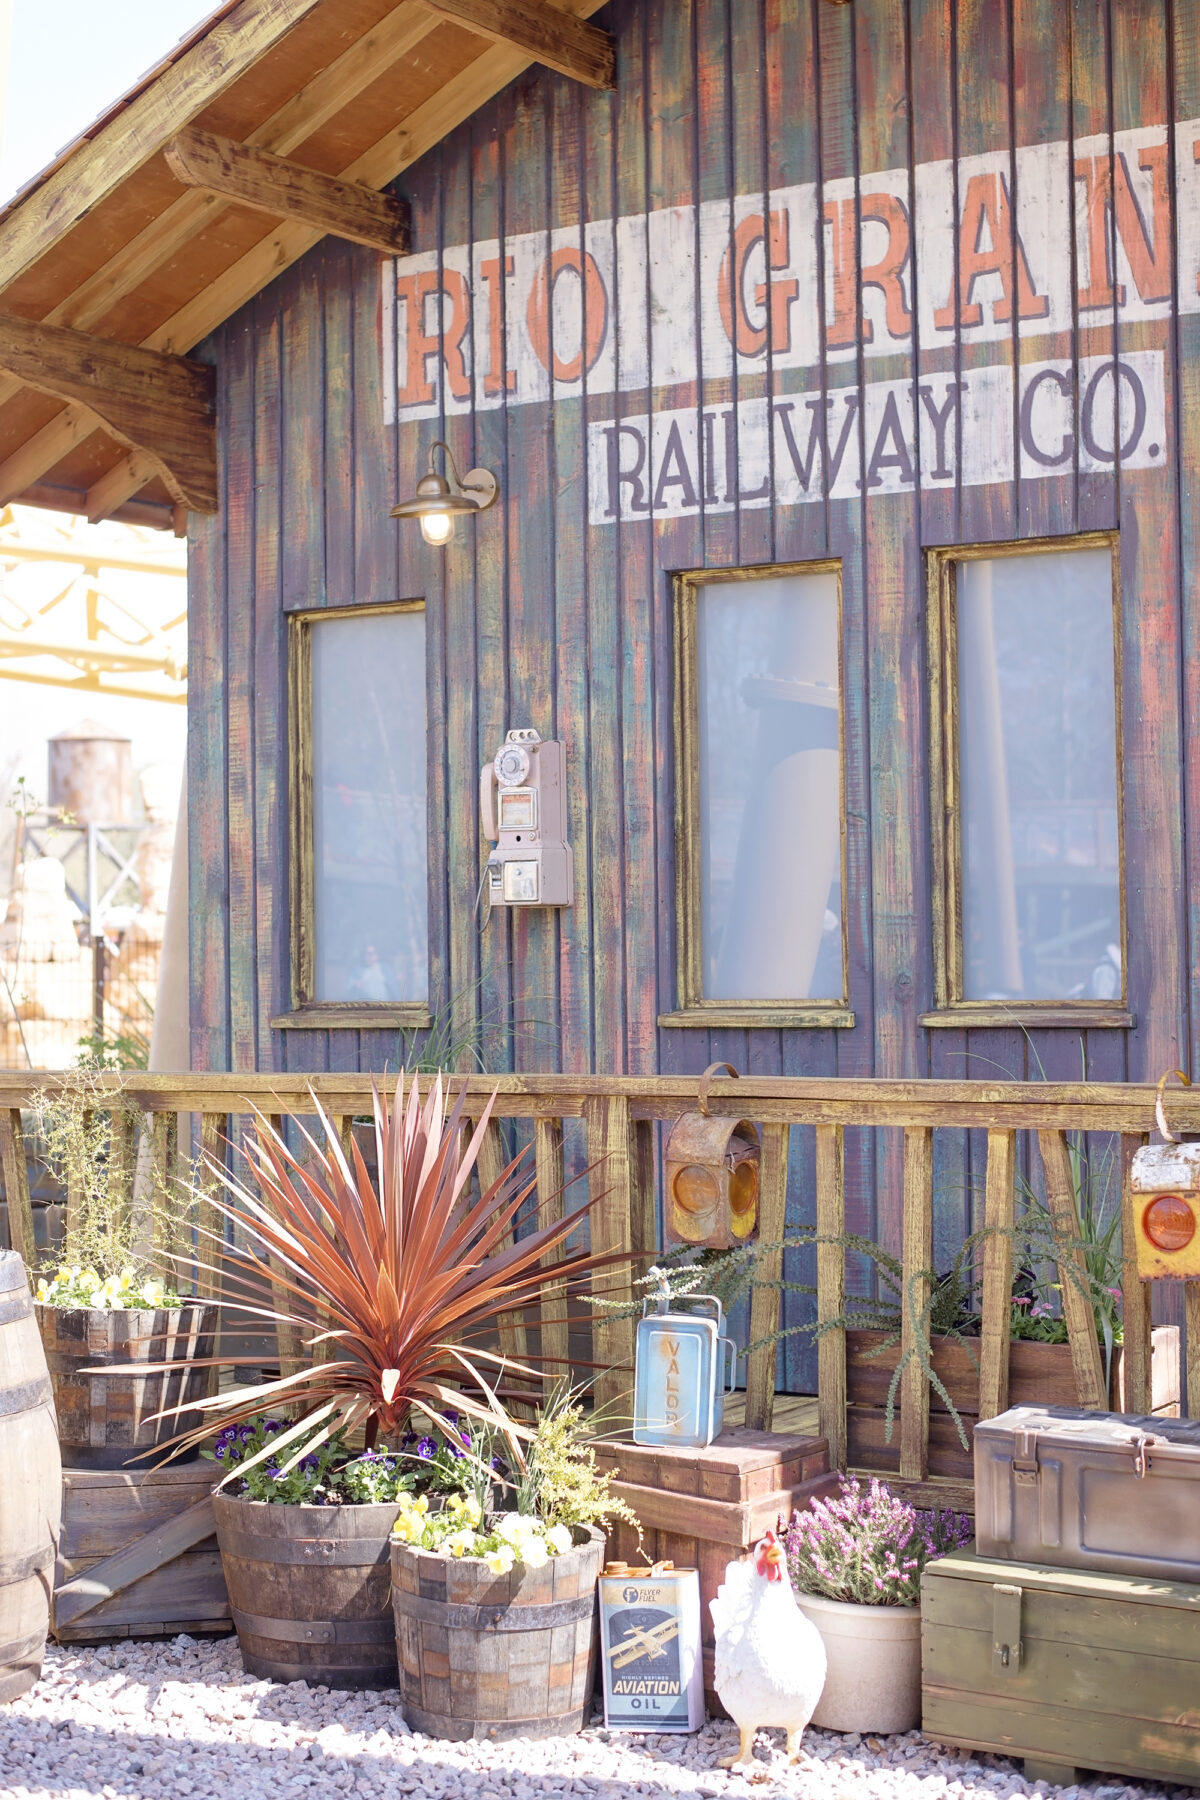 Image shows the Rio Grande Railway Station at Tornado Springs in Paultons Park.